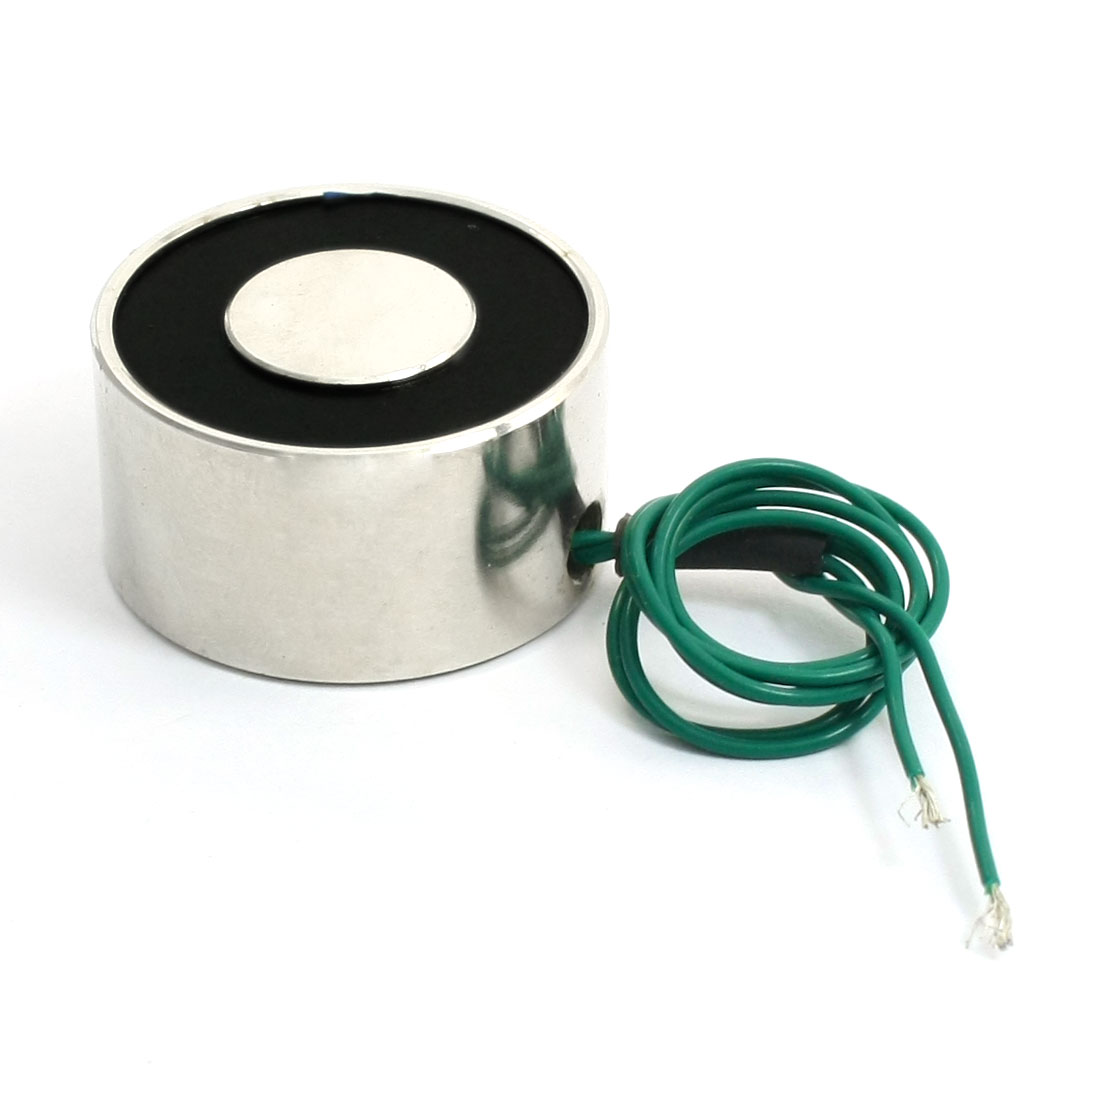 Uxcell 12V 0.36A 18Kg 4mm Thread Dia Electric Lifting Magnet Electromagnet Solenoid 34x18mm